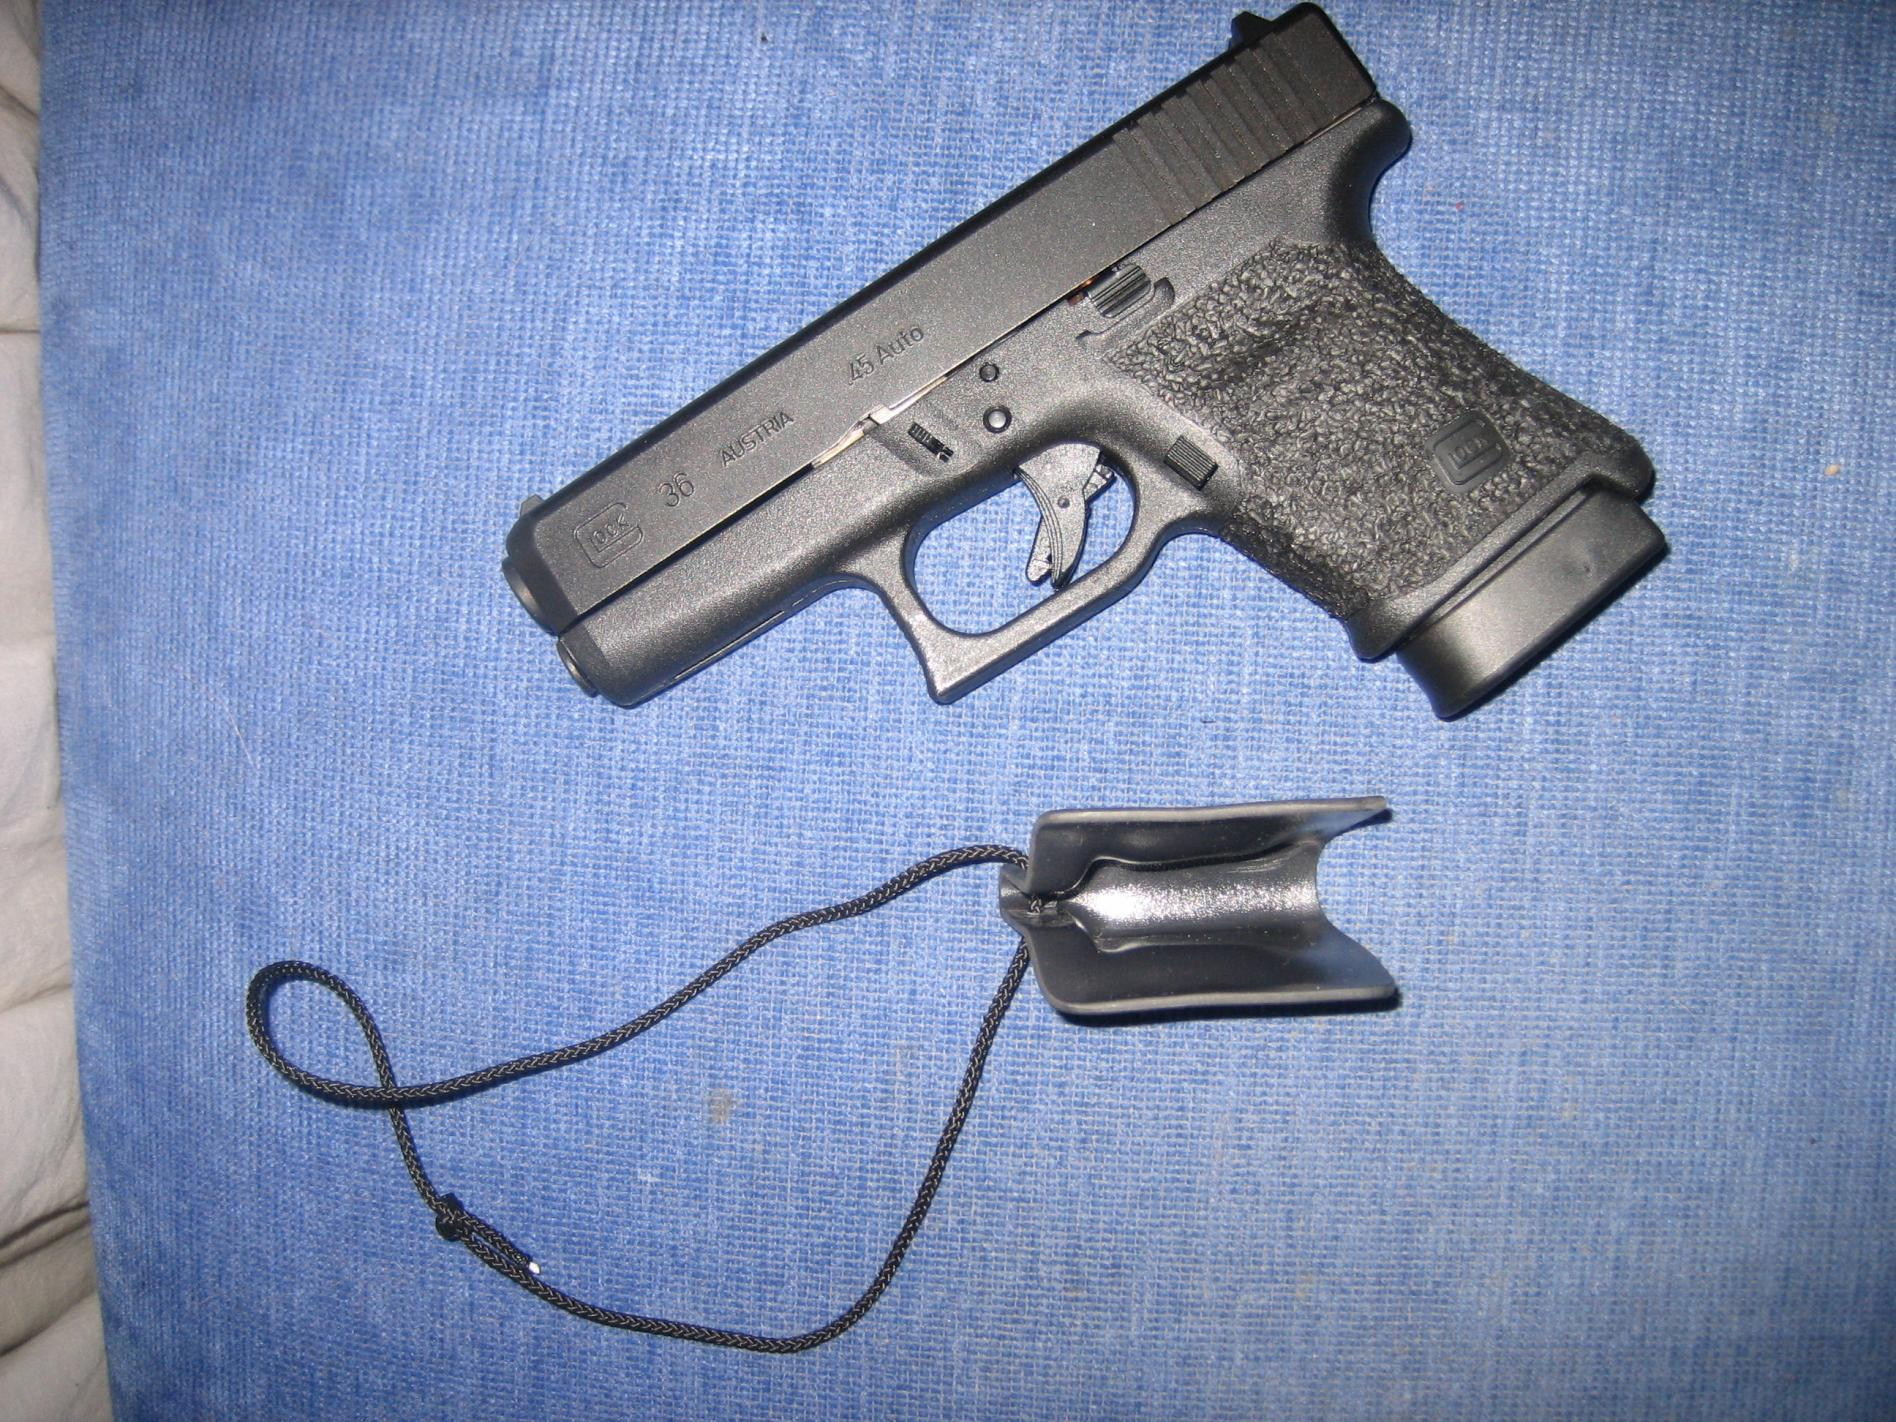 Purchased a Glock 36 Today-grip-reduction-010.jpg